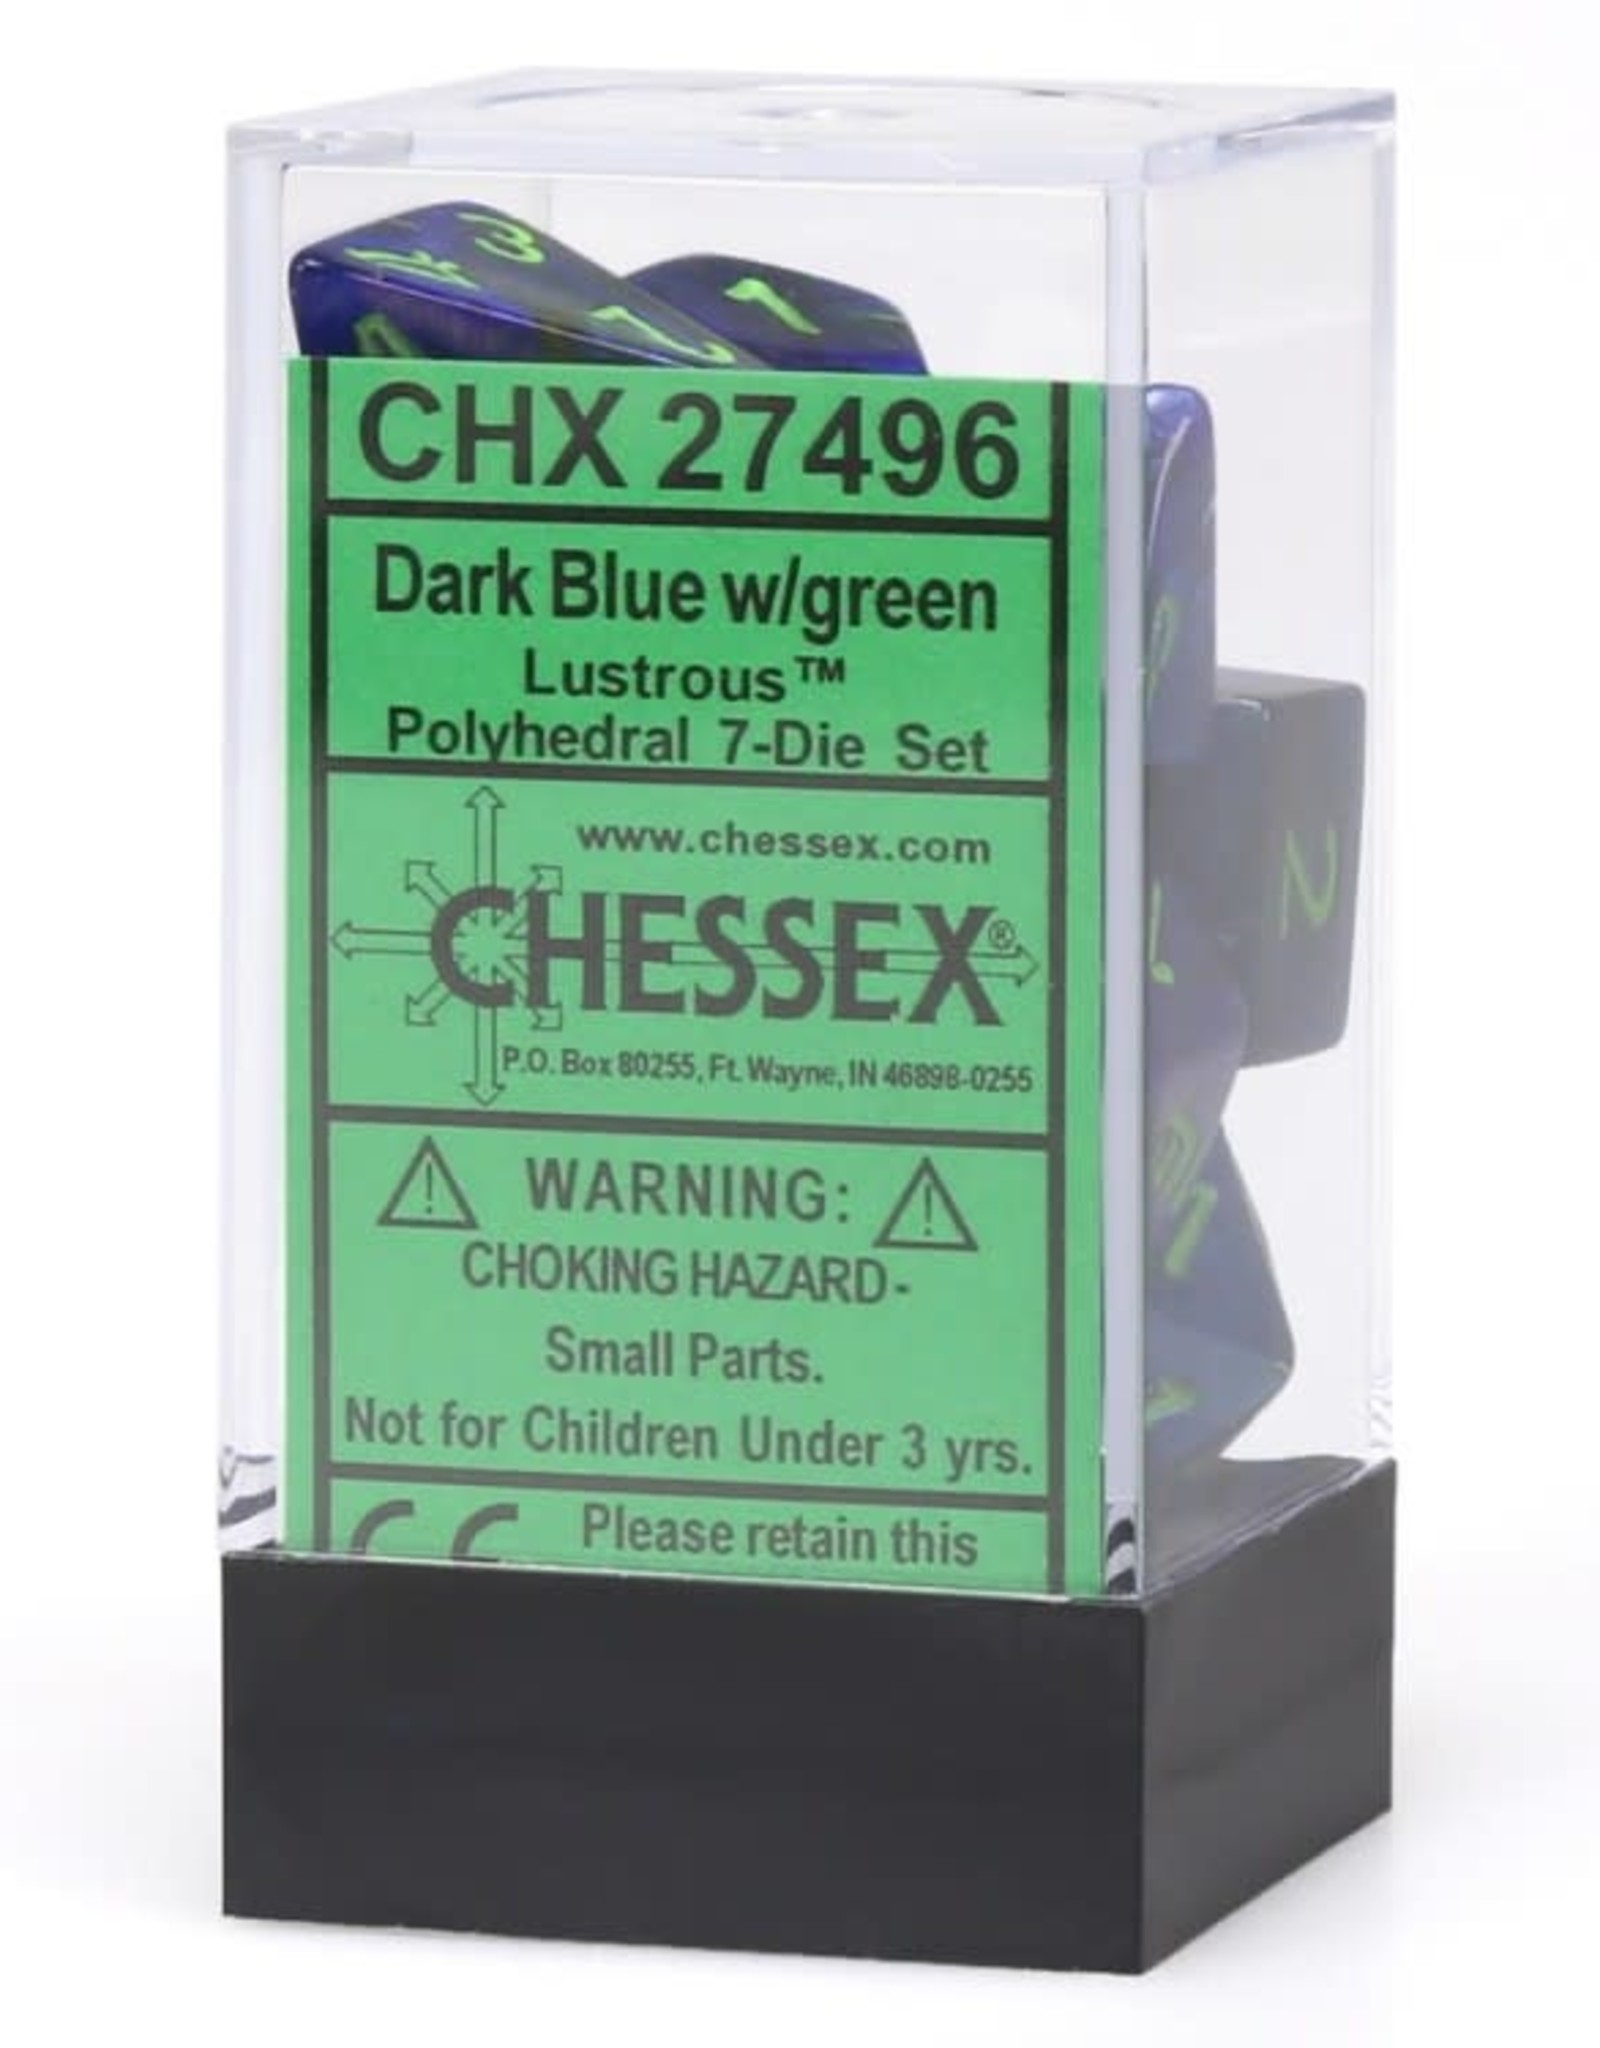 Chessex Lustrous Poly 7 set: Dark Blue w/ Green